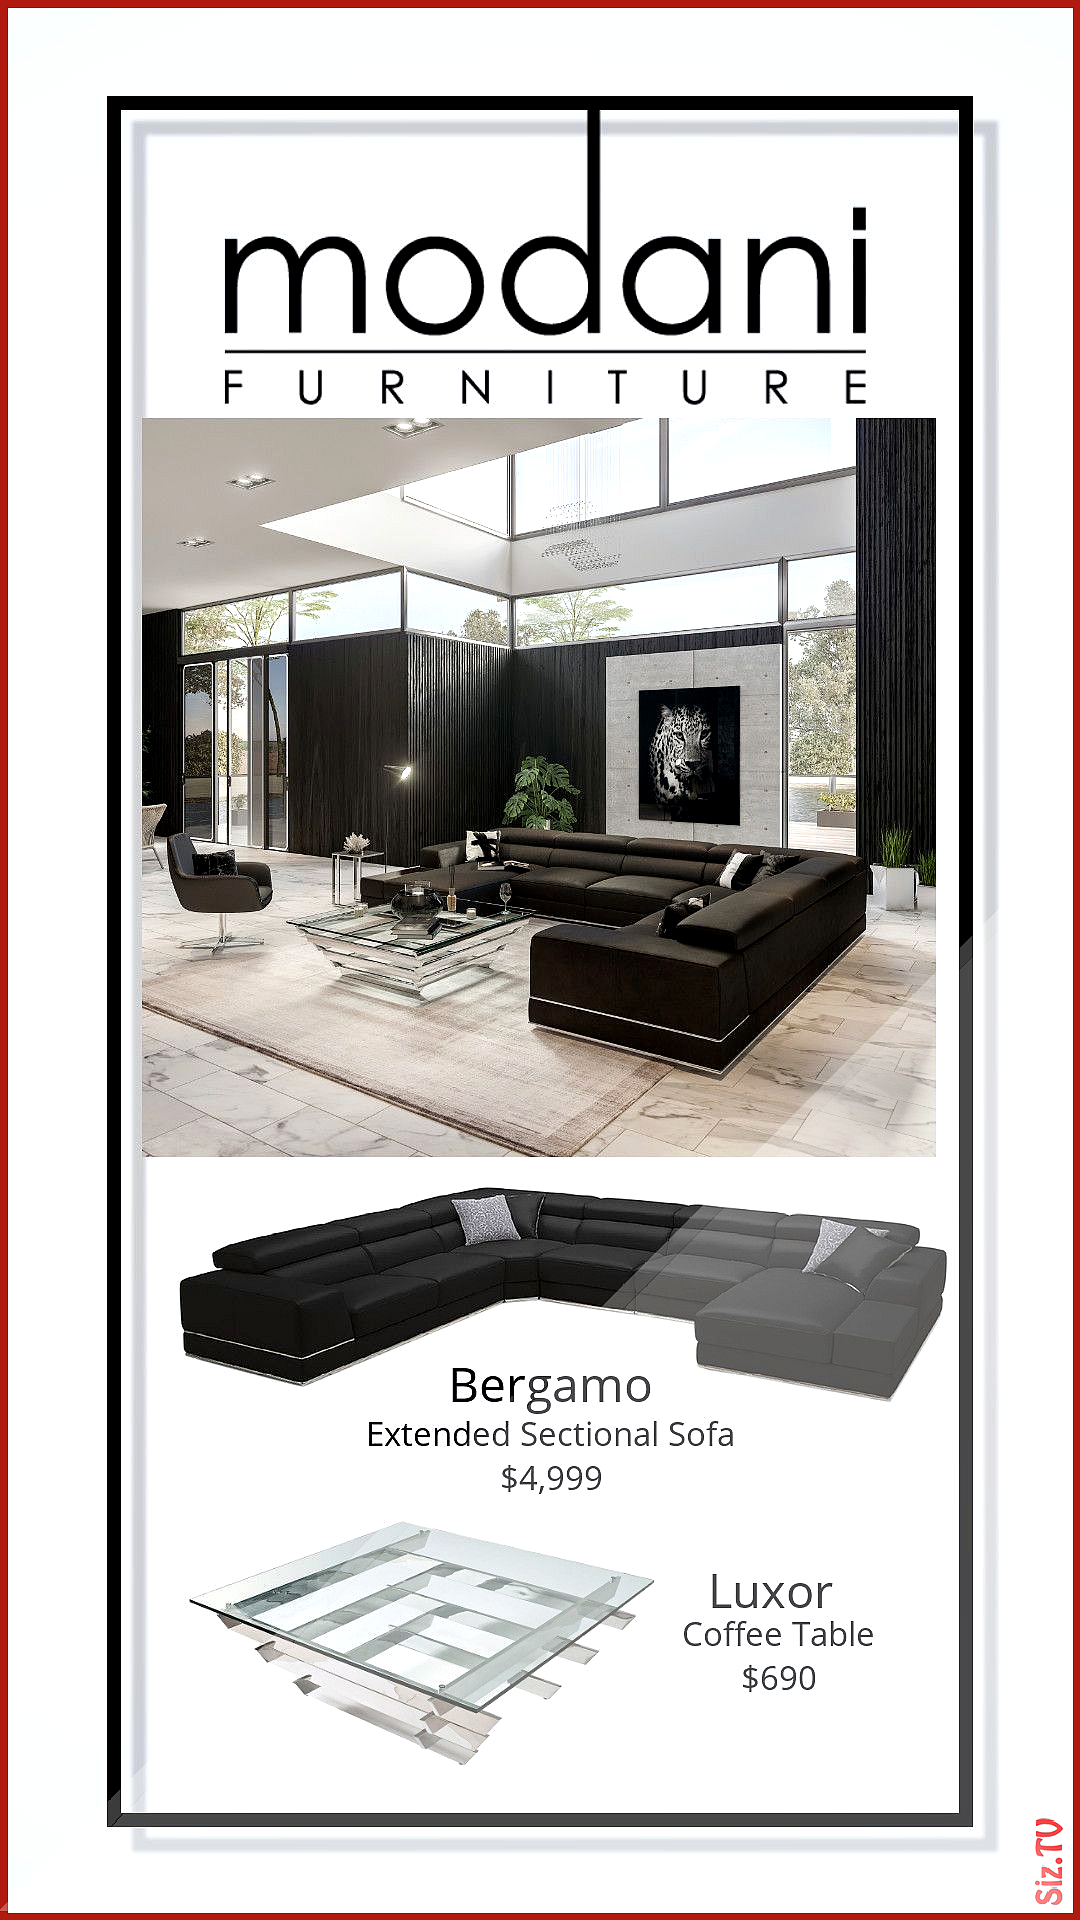 Bergamo Extended Sectional Sofa In Black Bergamo Black Extended Farmhouse Living Room Sectional Sectional Sofa Small Living Room Design Trendy Living Rooms [ 1920 x 1080 Pixel ]